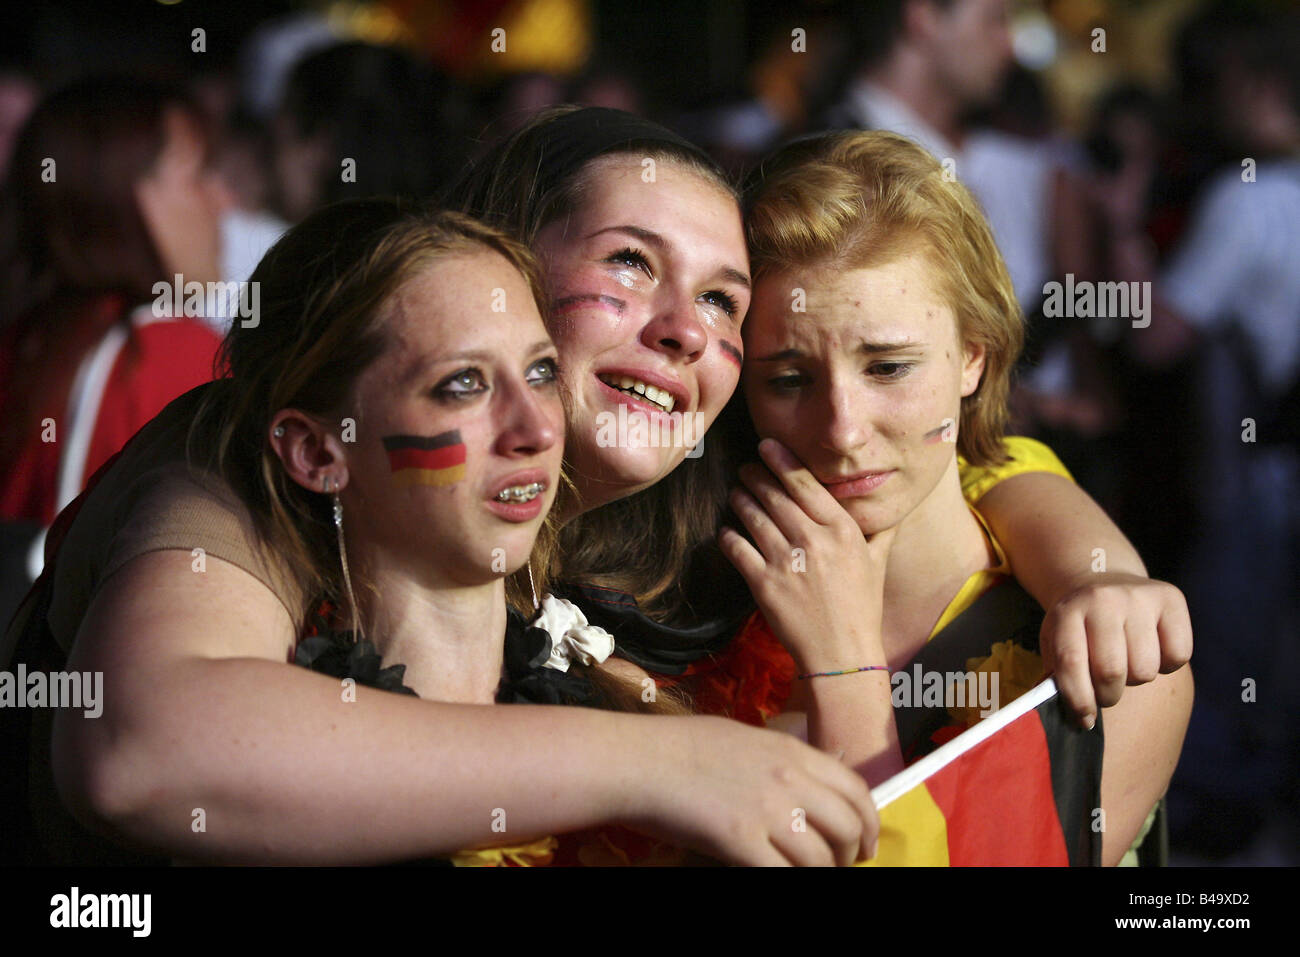 German football fans crying after the German defeat against Italy at the FIFA World Cup 2006, Berlin, Germany - Stock Image